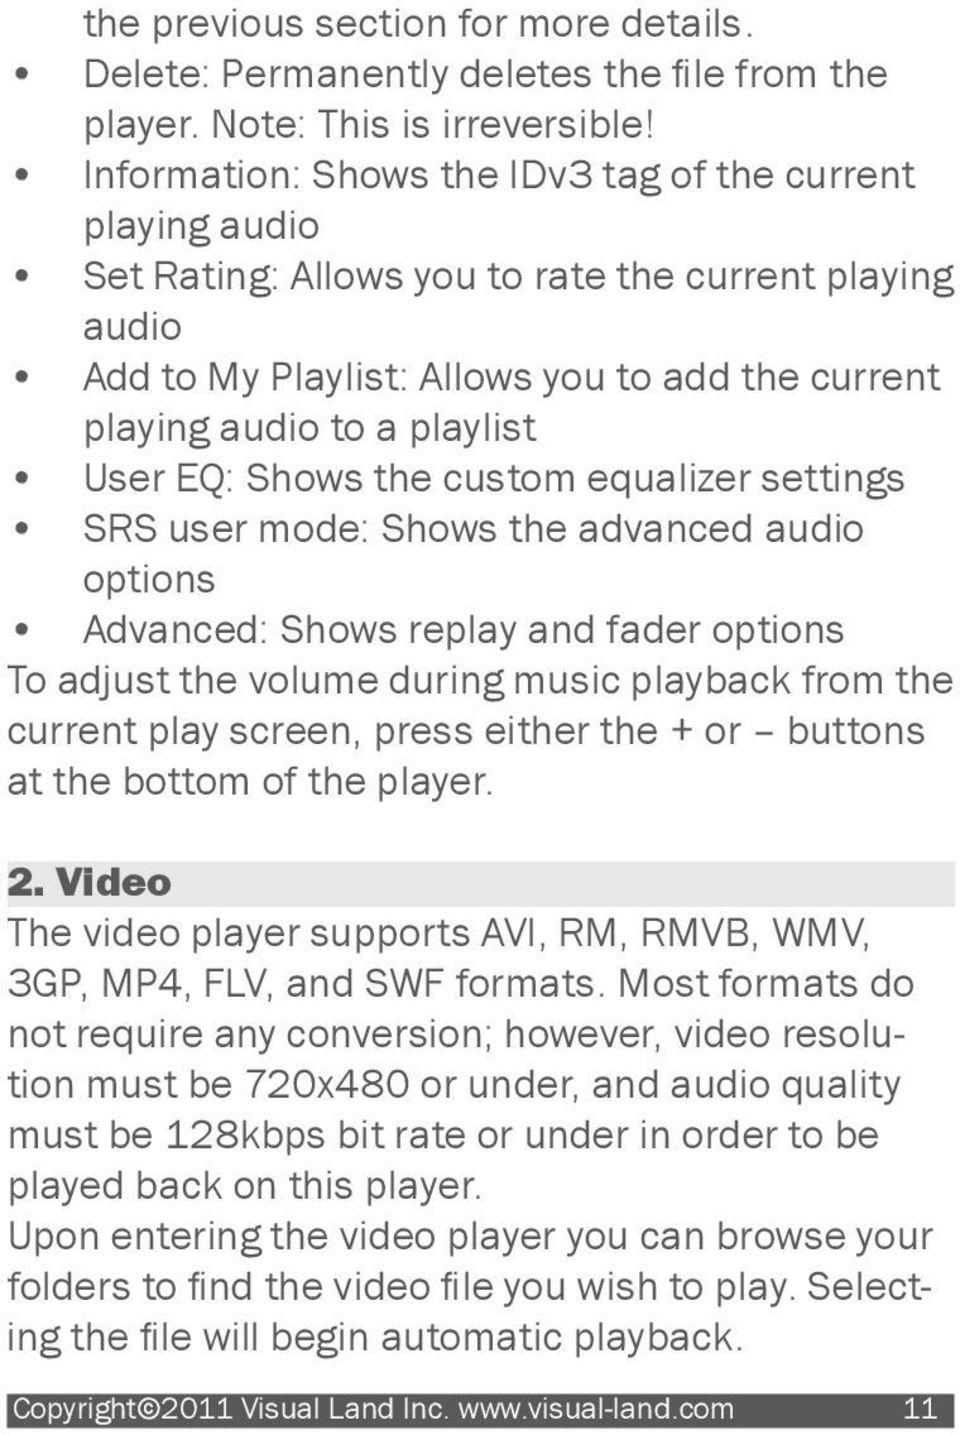 User EQ: Shows the custom equalizer settings SRS user mode: Shows the advanced audio options Advanced: Shows replay and fader options To adjust the volume during music playback from the current play